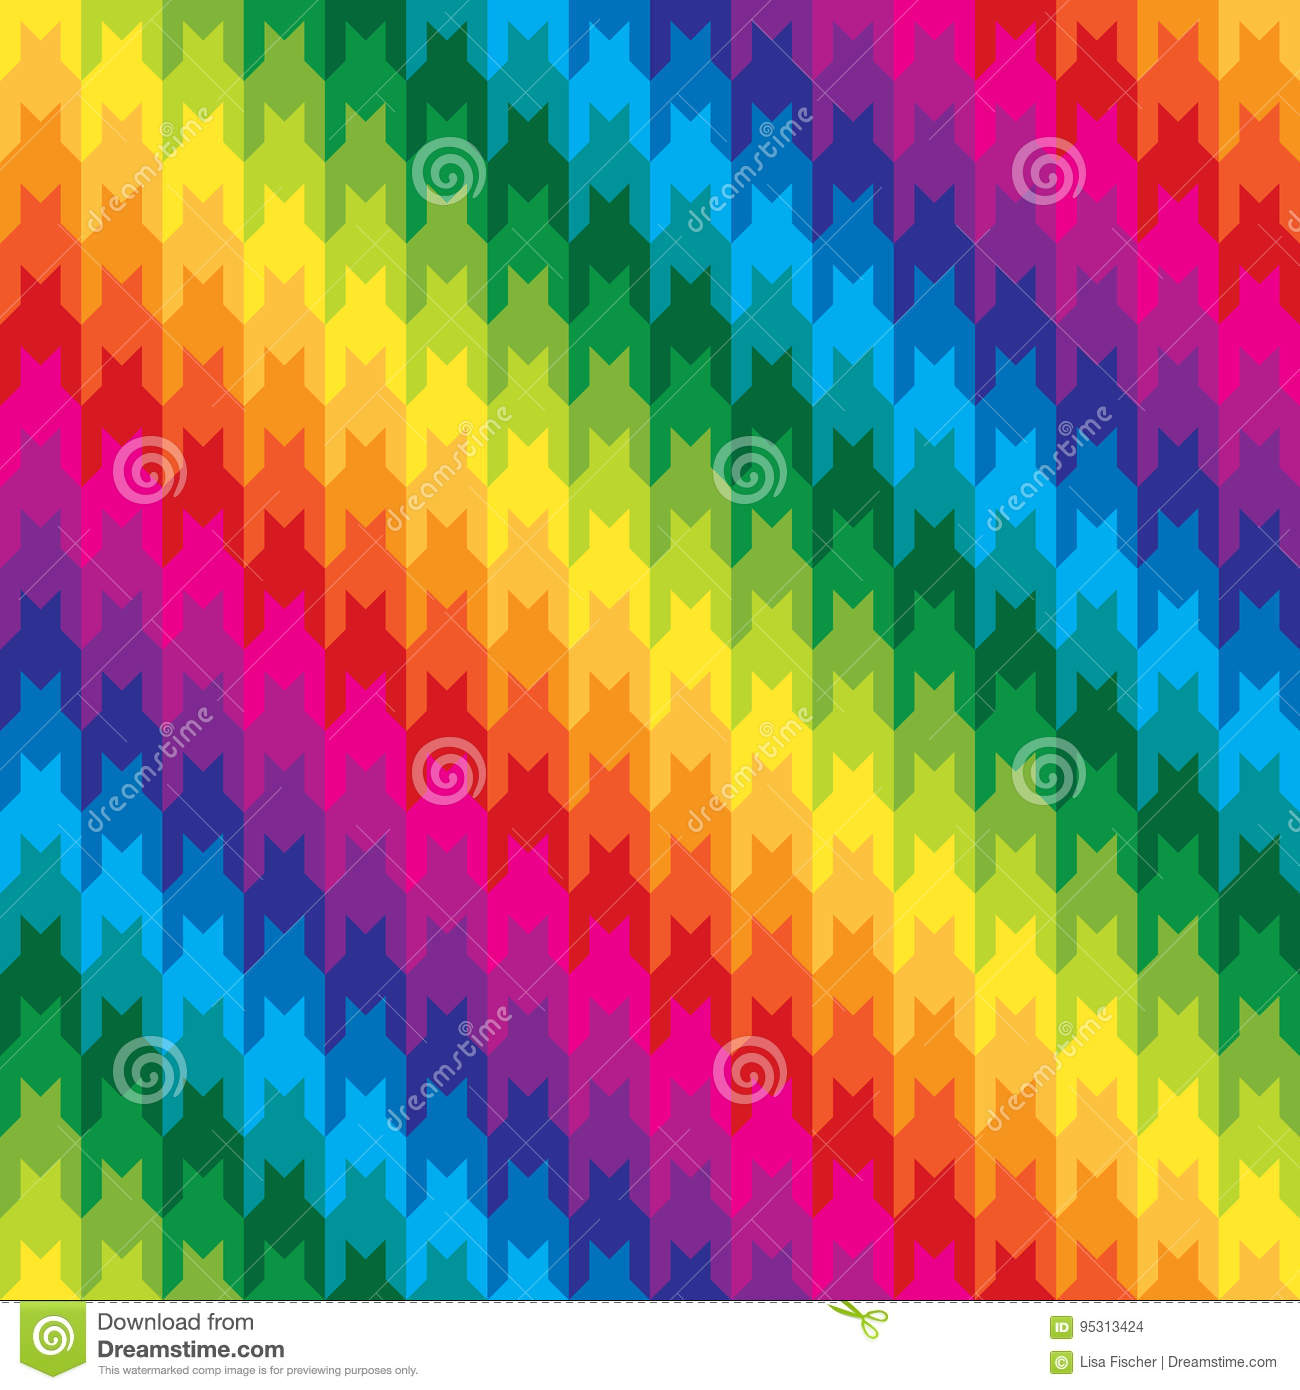 Classic Hounds Tooth Pattern in Rainbow Colors